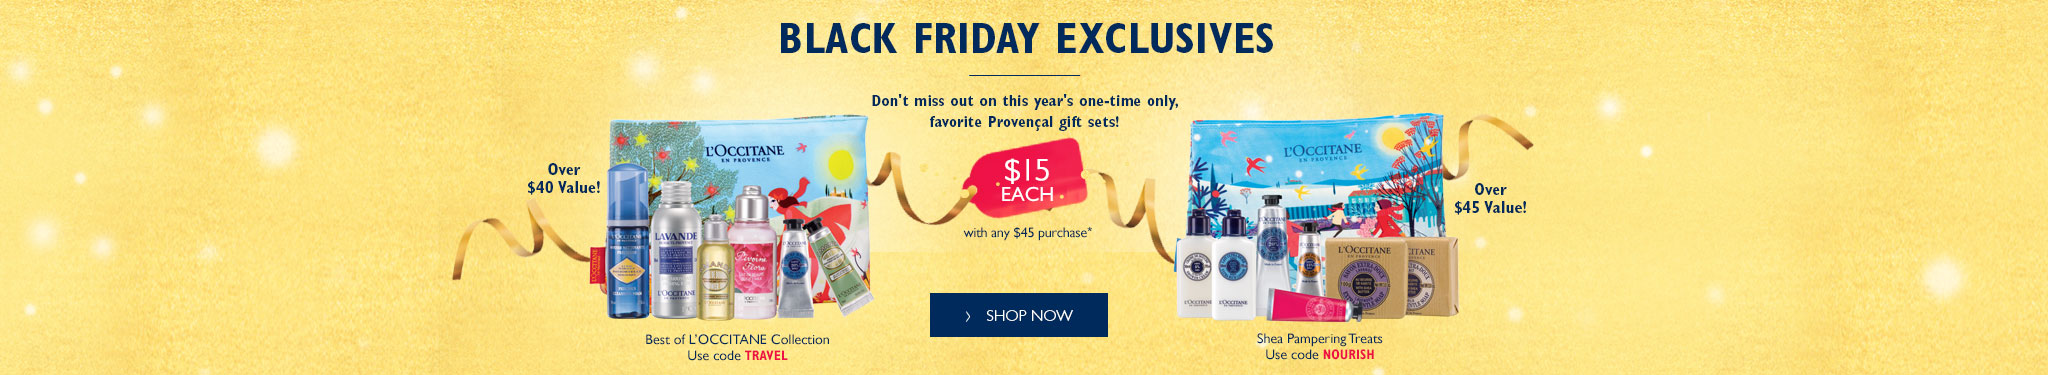 Black Friday Exclusive - Don't miss out on this year's one-time only favorite provencal gift sets!